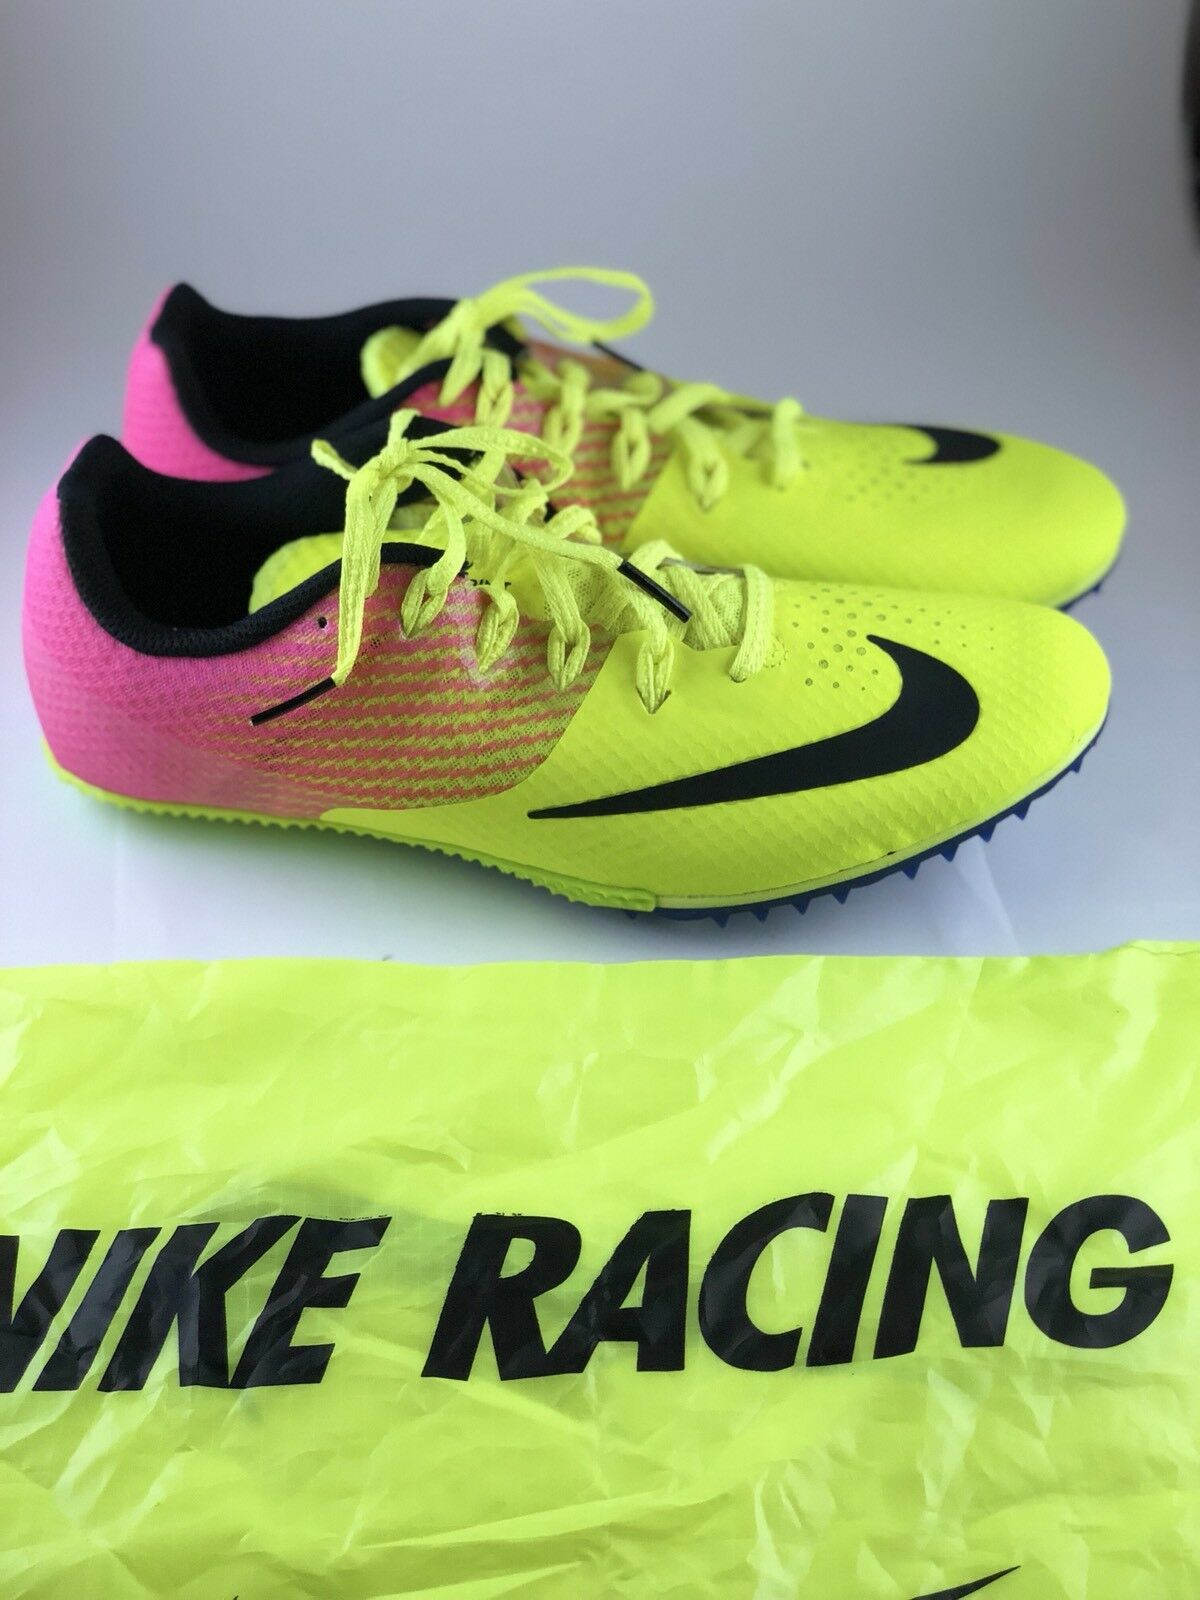 Nike Zoom Rival S Track Running Spikes Volt Pink Men's (Size 9.5) 806554-999